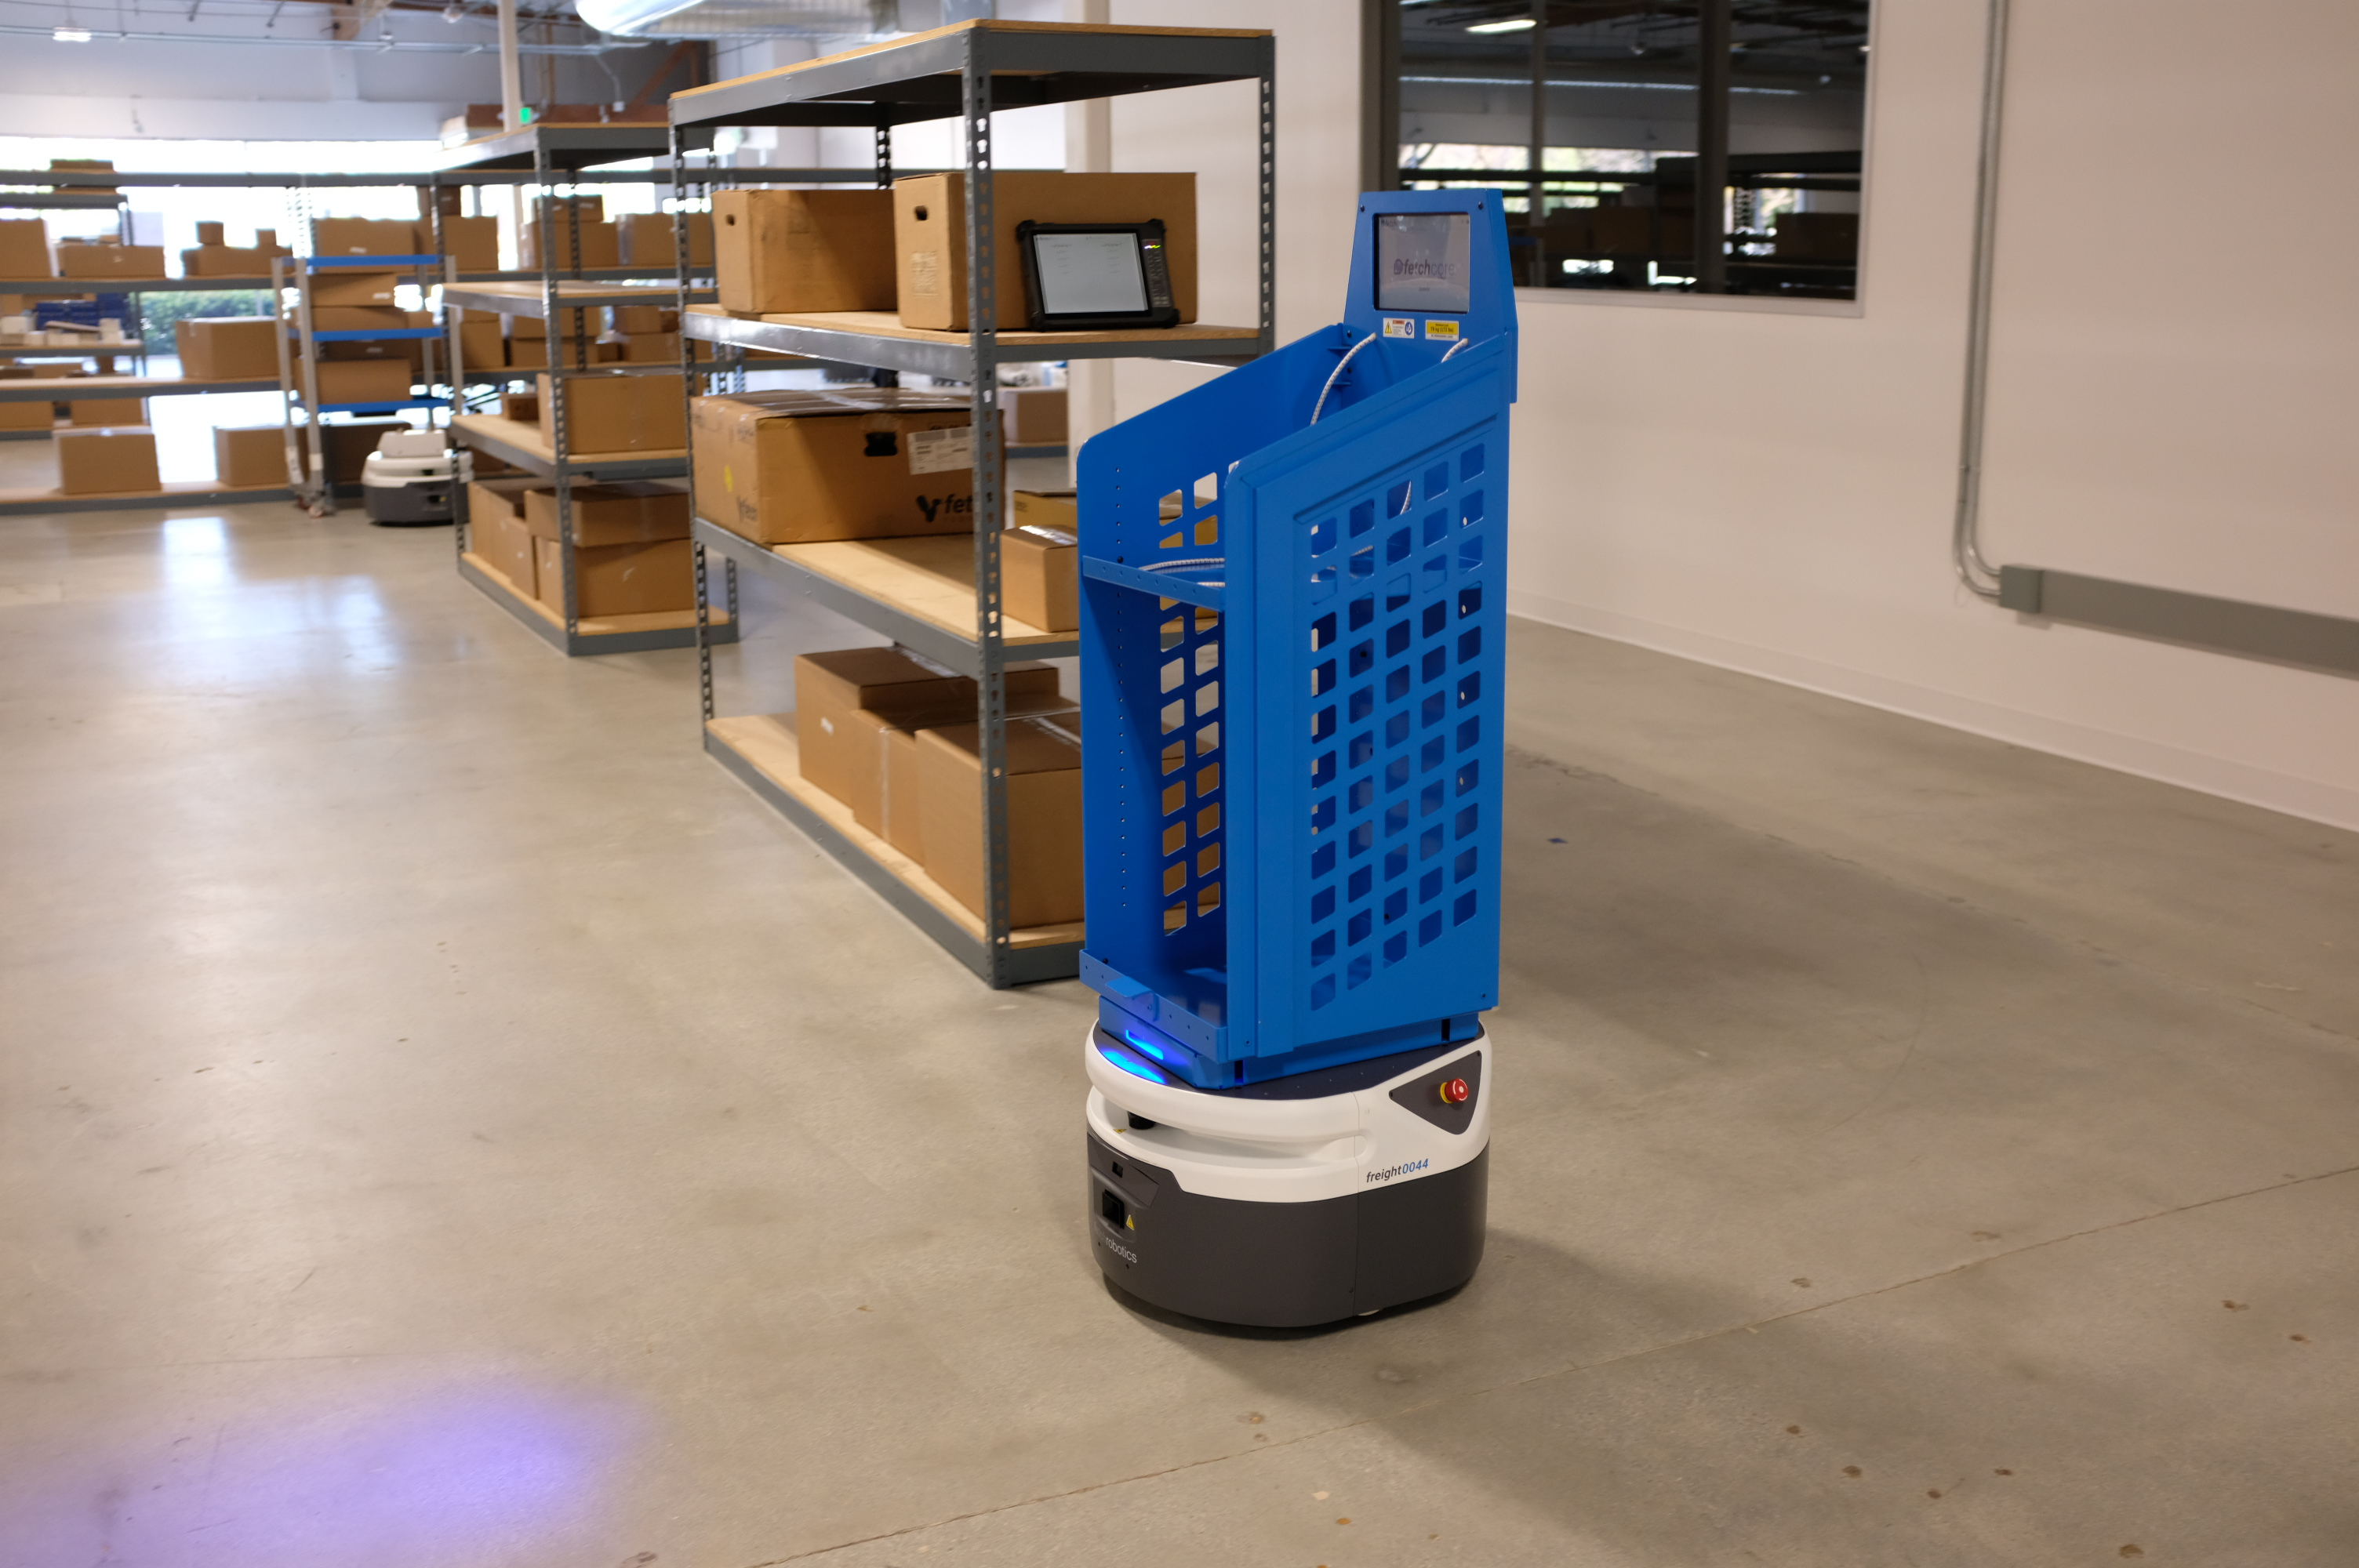 Fetch is building robots for the warehouses of the future